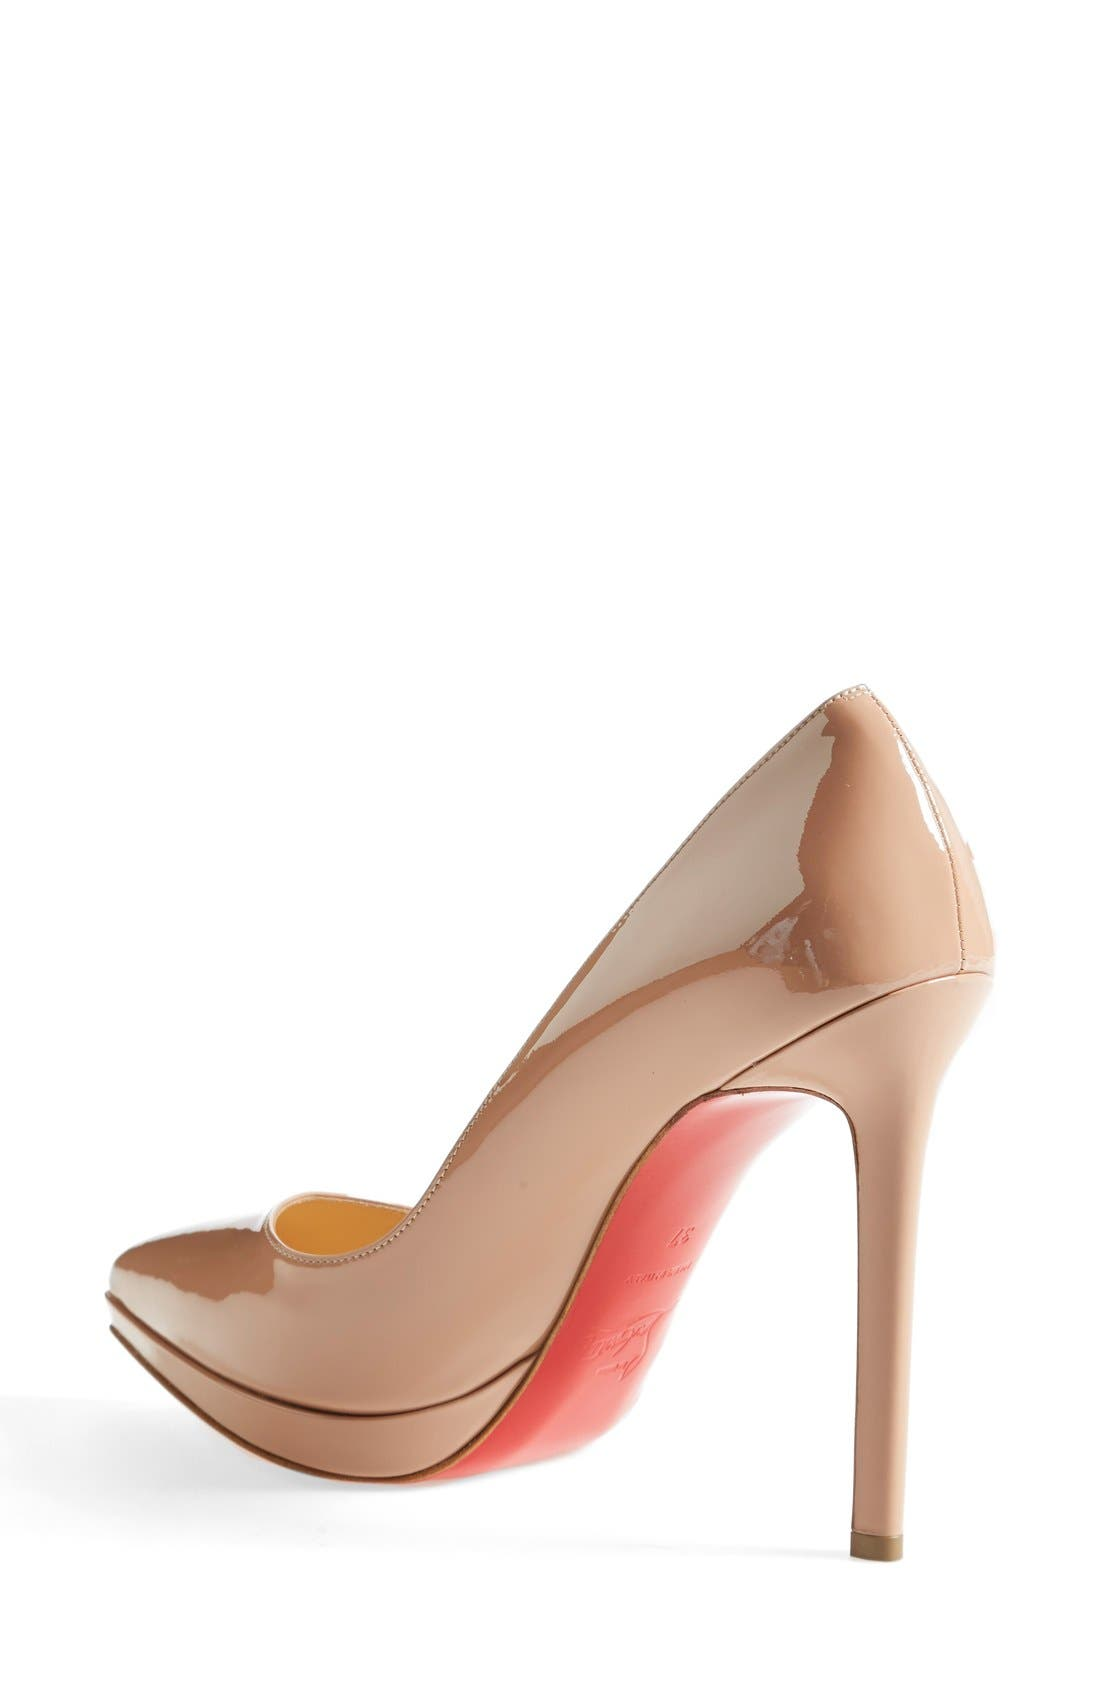 'Pigalle Plato' Pointy Toe Pump,                             Alternate thumbnail 6, color,